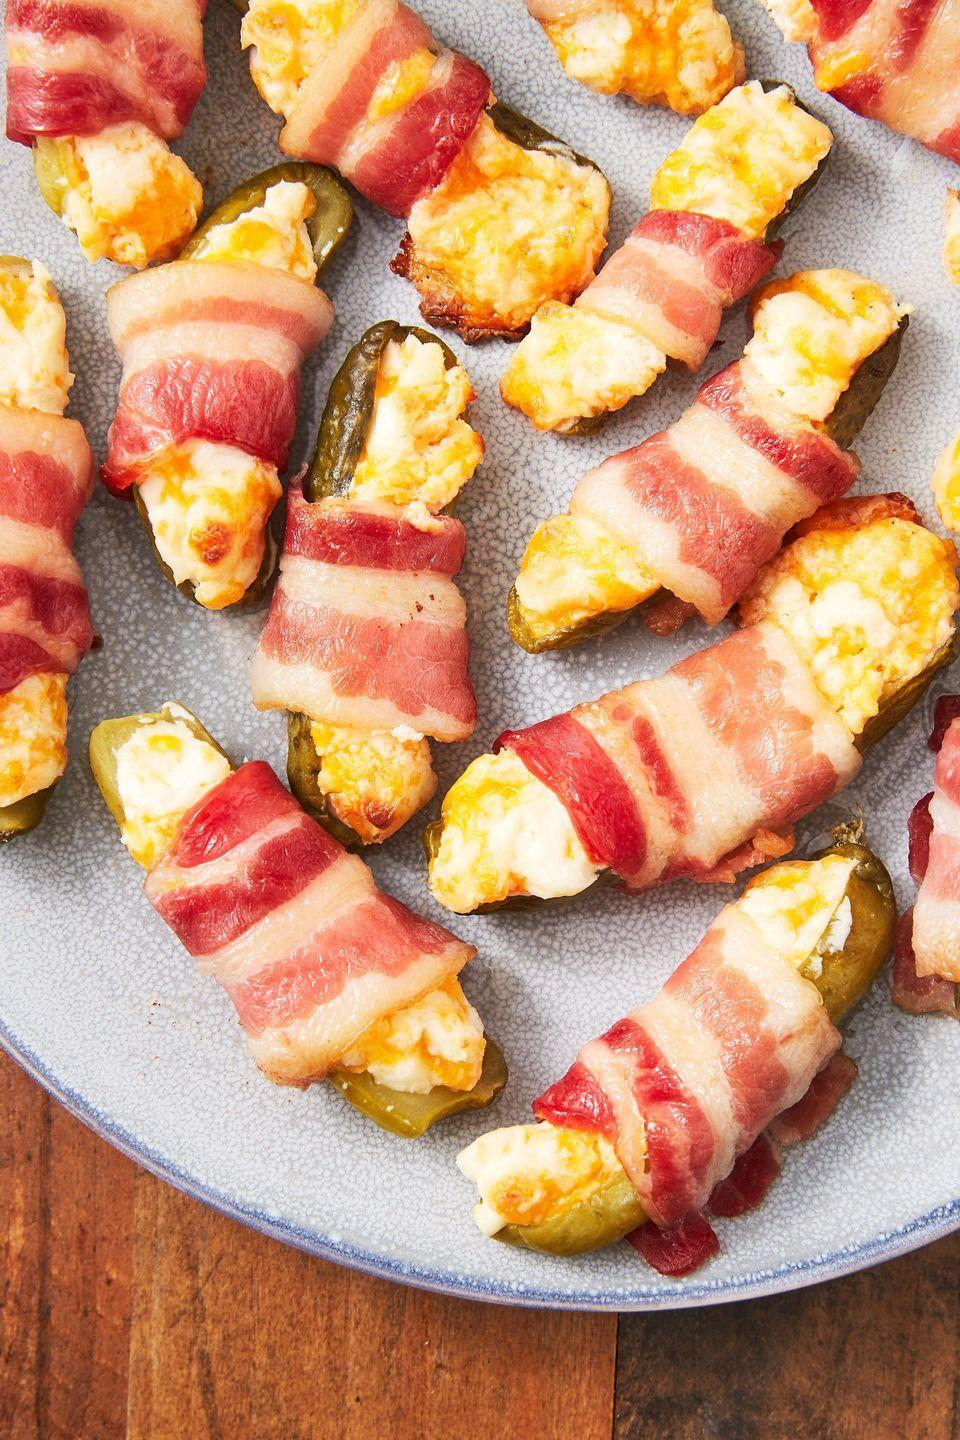 """<p>Pickles are the new pigs in a blanket.</p><p>Get the recipe from <a href=""""https://www.delish.com/cooking/recipe-ideas/recipes/a50084/bacon-wrapped-pickles-recipe/"""" rel=""""nofollow noopener"""" target=""""_blank"""" data-ylk=""""slk:Delish"""" class=""""link rapid-noclick-resp"""">Delish</a>.</p>"""